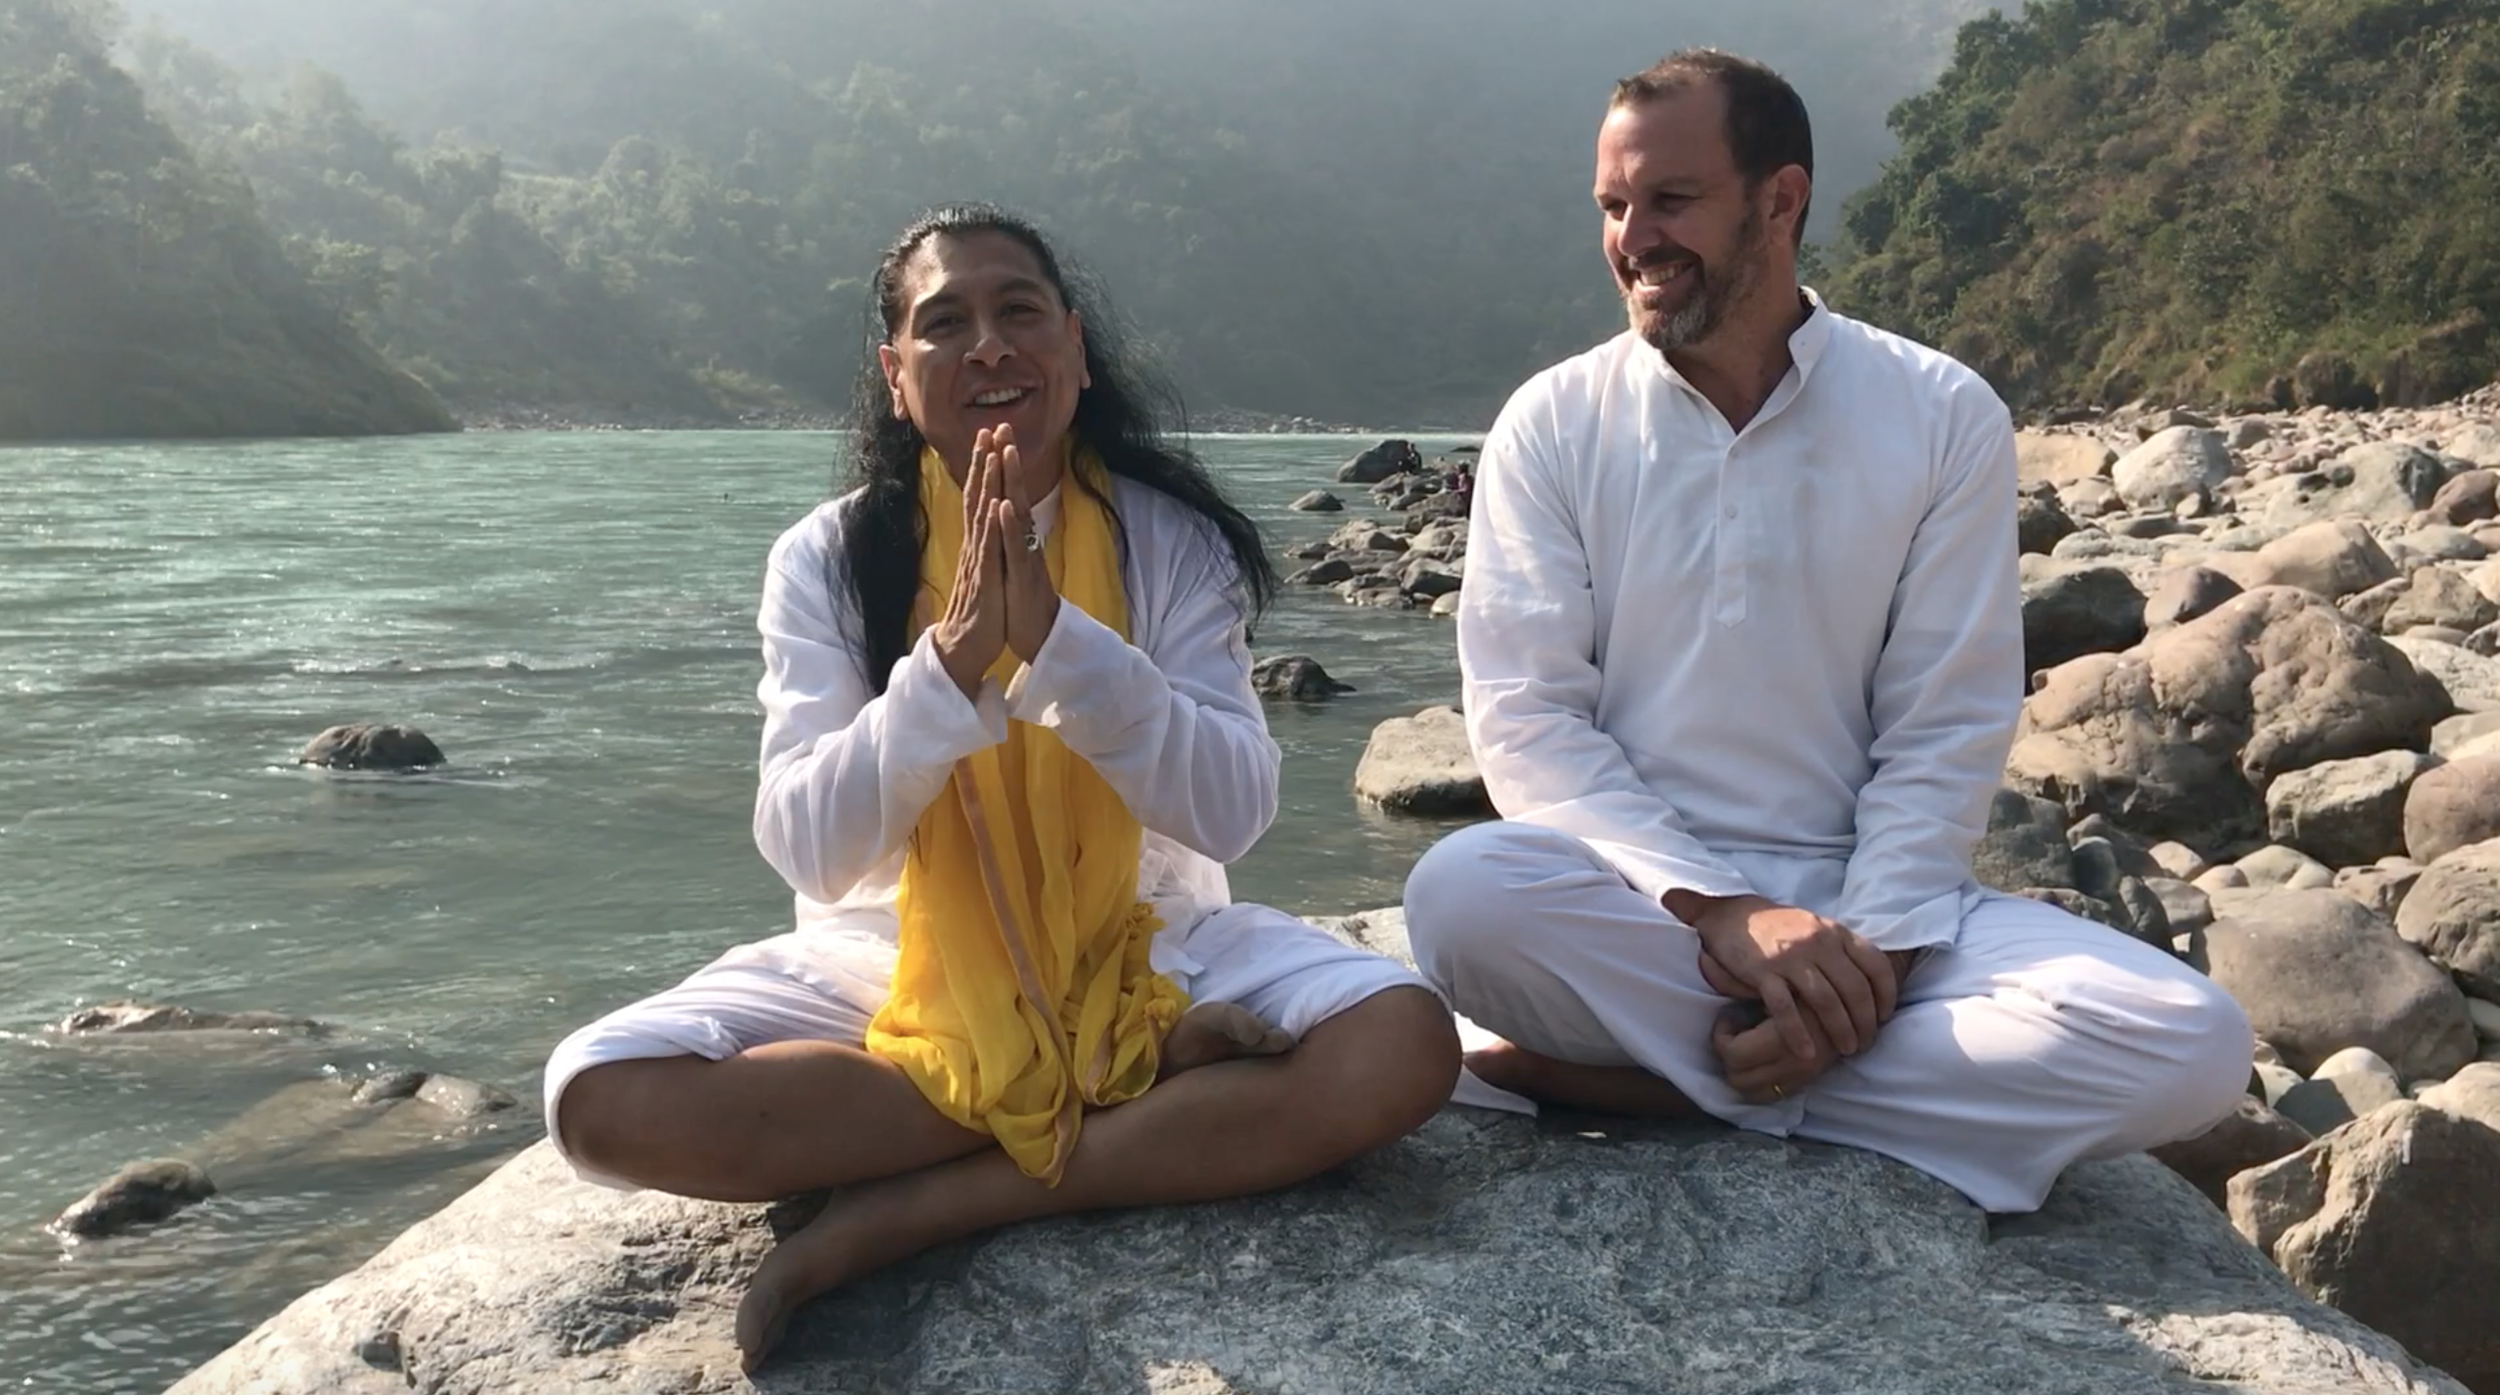 Teachers Don Jose Ruiz and Ramakrishna Ananda giving a satsang (teaching) on the banks of the Ganges in Rishikesh.